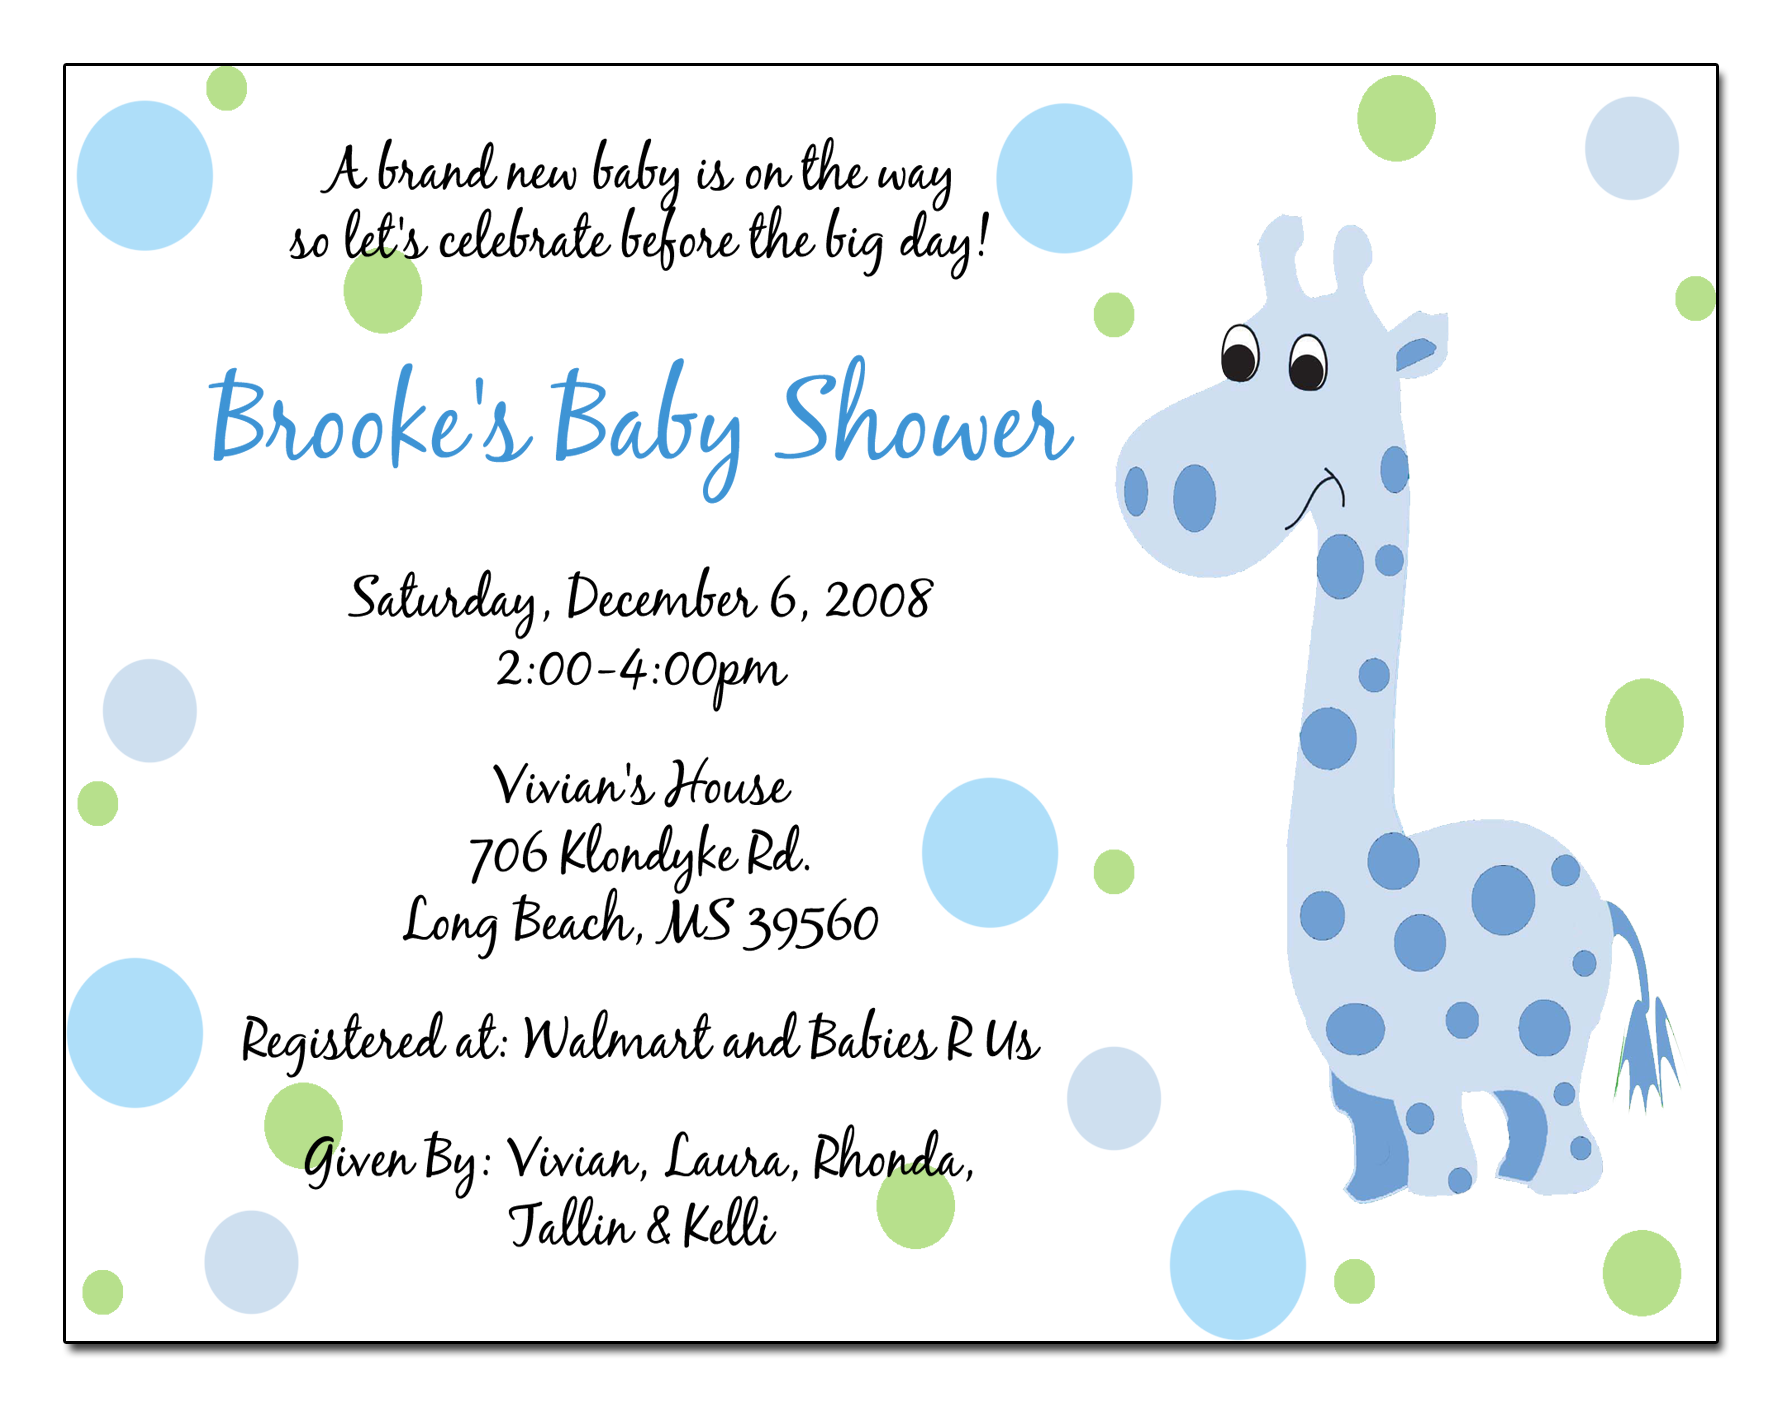 Full Size of Baby Shower:63+ Delightful Cheap Baby Shower Invitations Image Inspirations Cheap Baby Shower Invitations Colors Inexpensive Baby Shower Invitations Hot Air Balloon With Full Size Of Colorsinexpensive Baby Shower Invitations Hot Air Balloon With Awesome Ilustration Inspirational